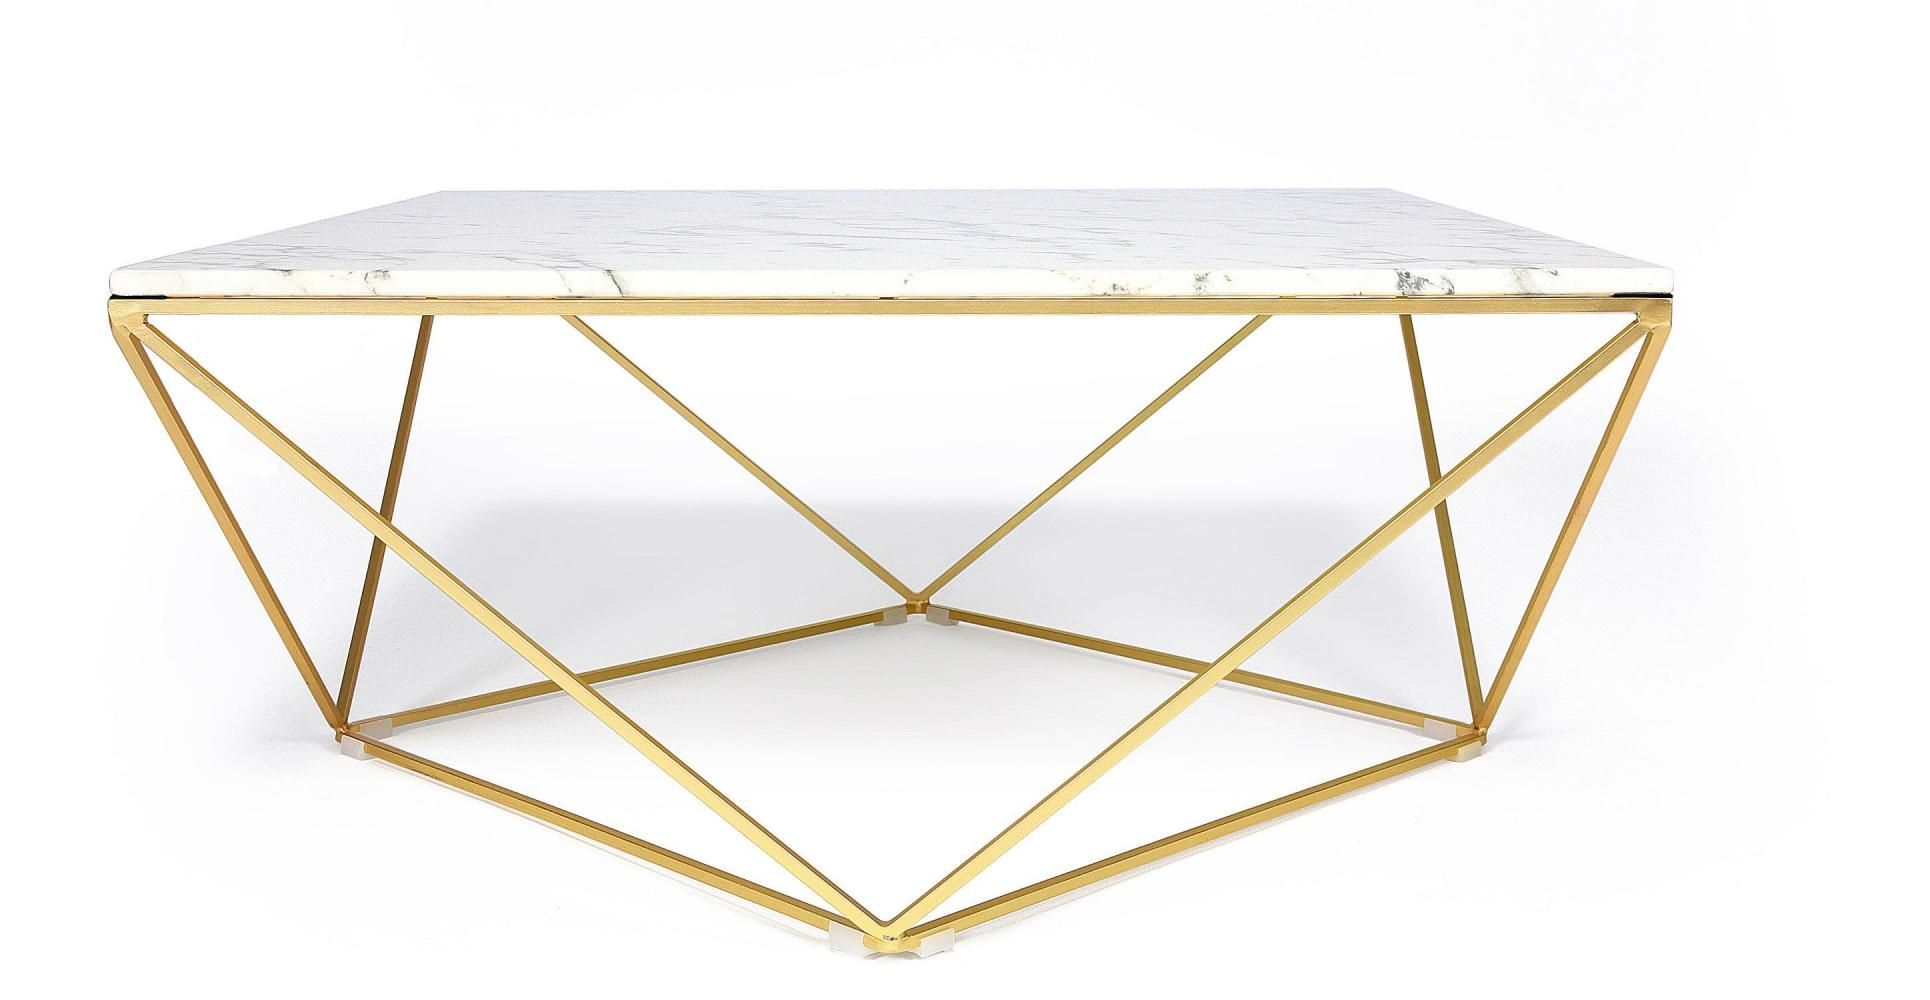 Table Basse Design Facon Marbre Blanc Avec Pietement En Fer Table Basse Marbre Table Basse Table Basse Marbre Blanc